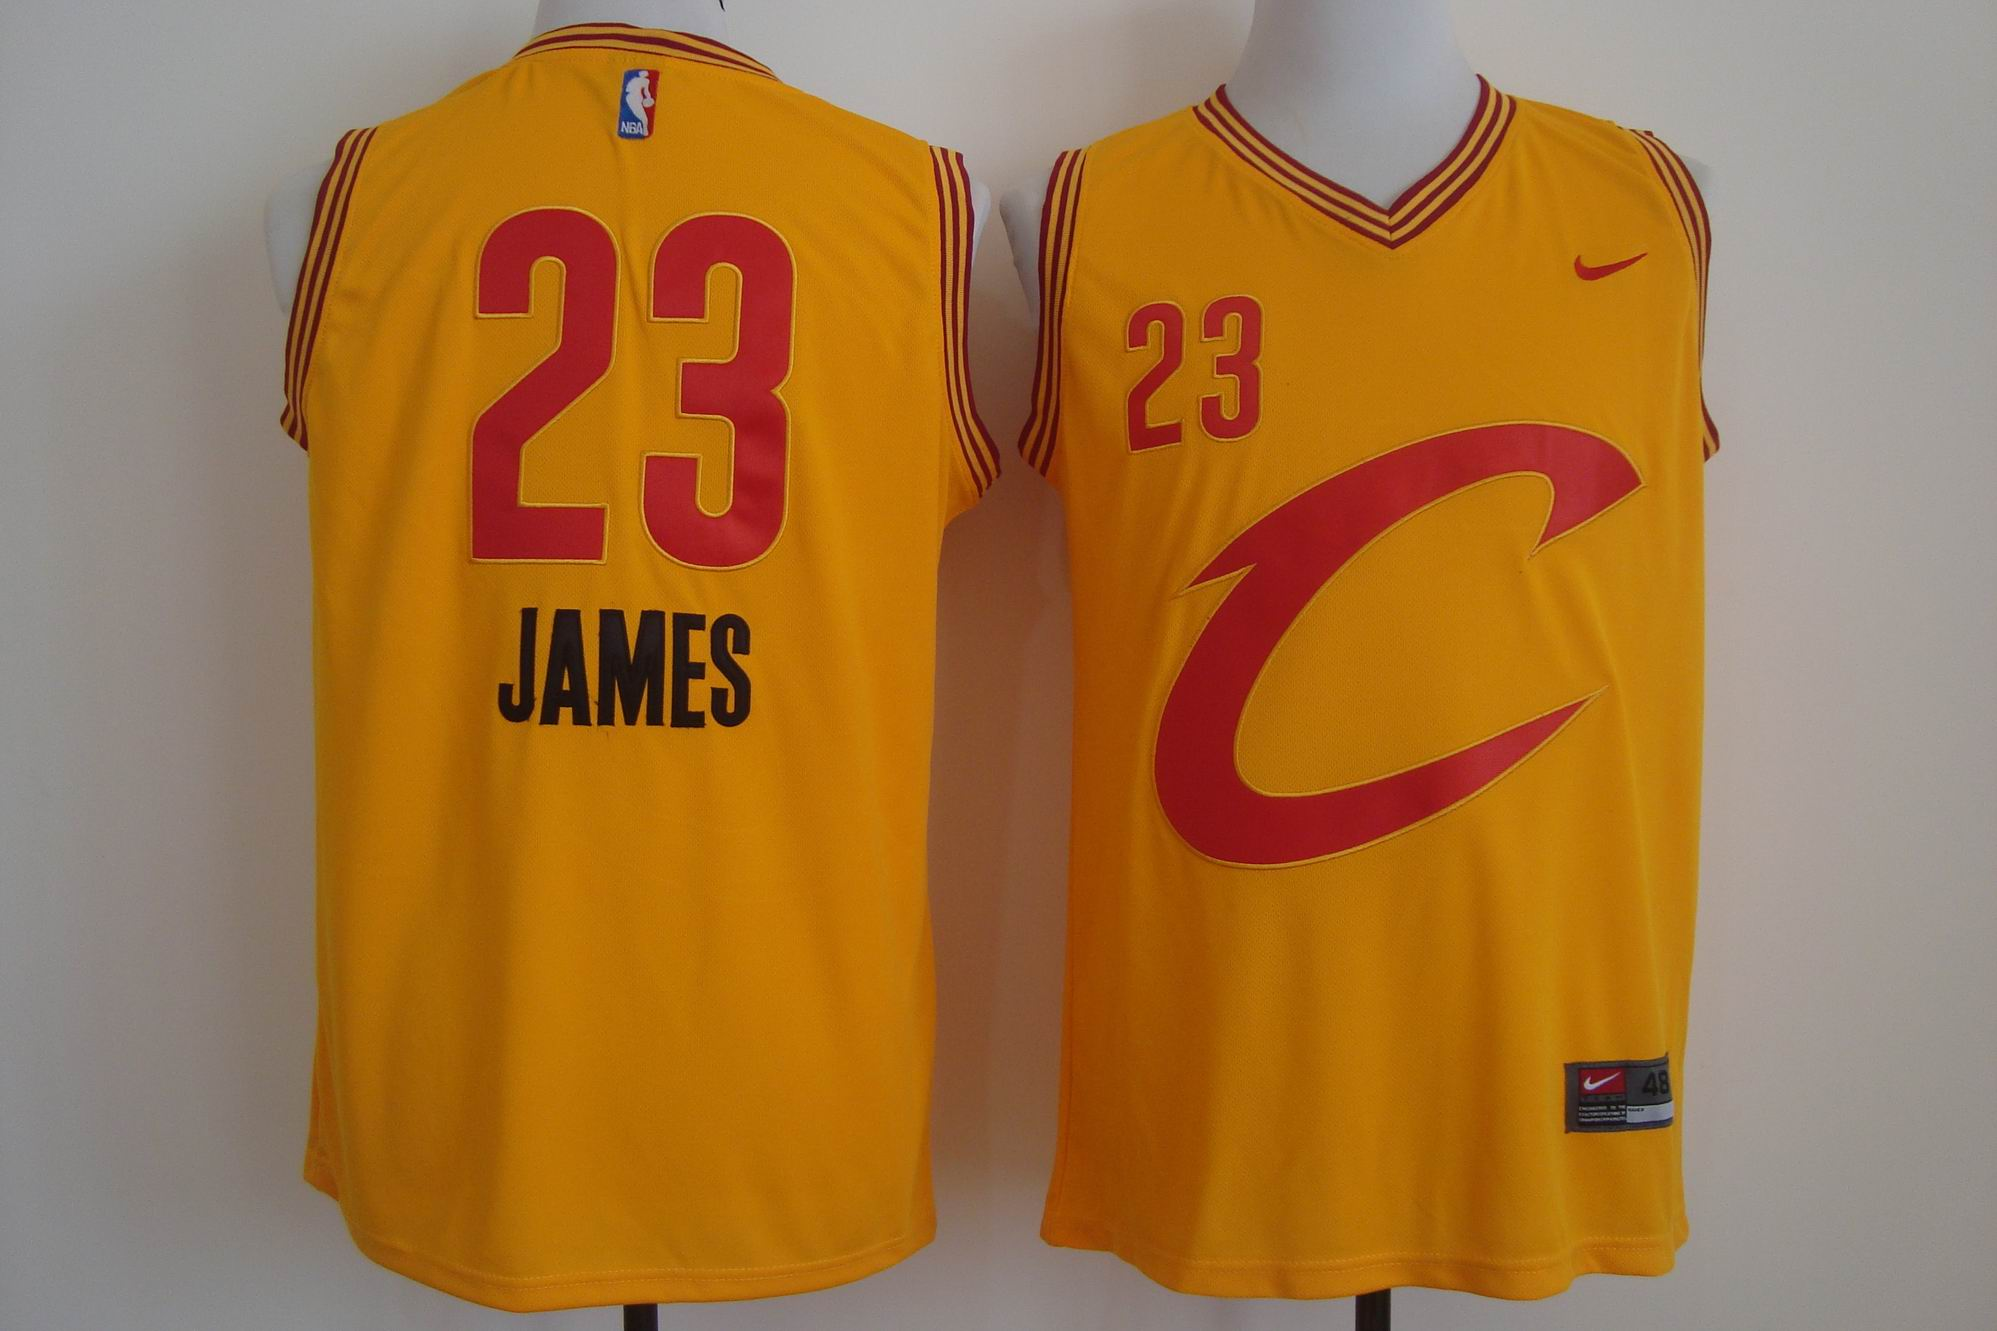 Men's Nike Cleveland Cavaliers #23 LeBron James Yellow Stitched NBA C Jersey